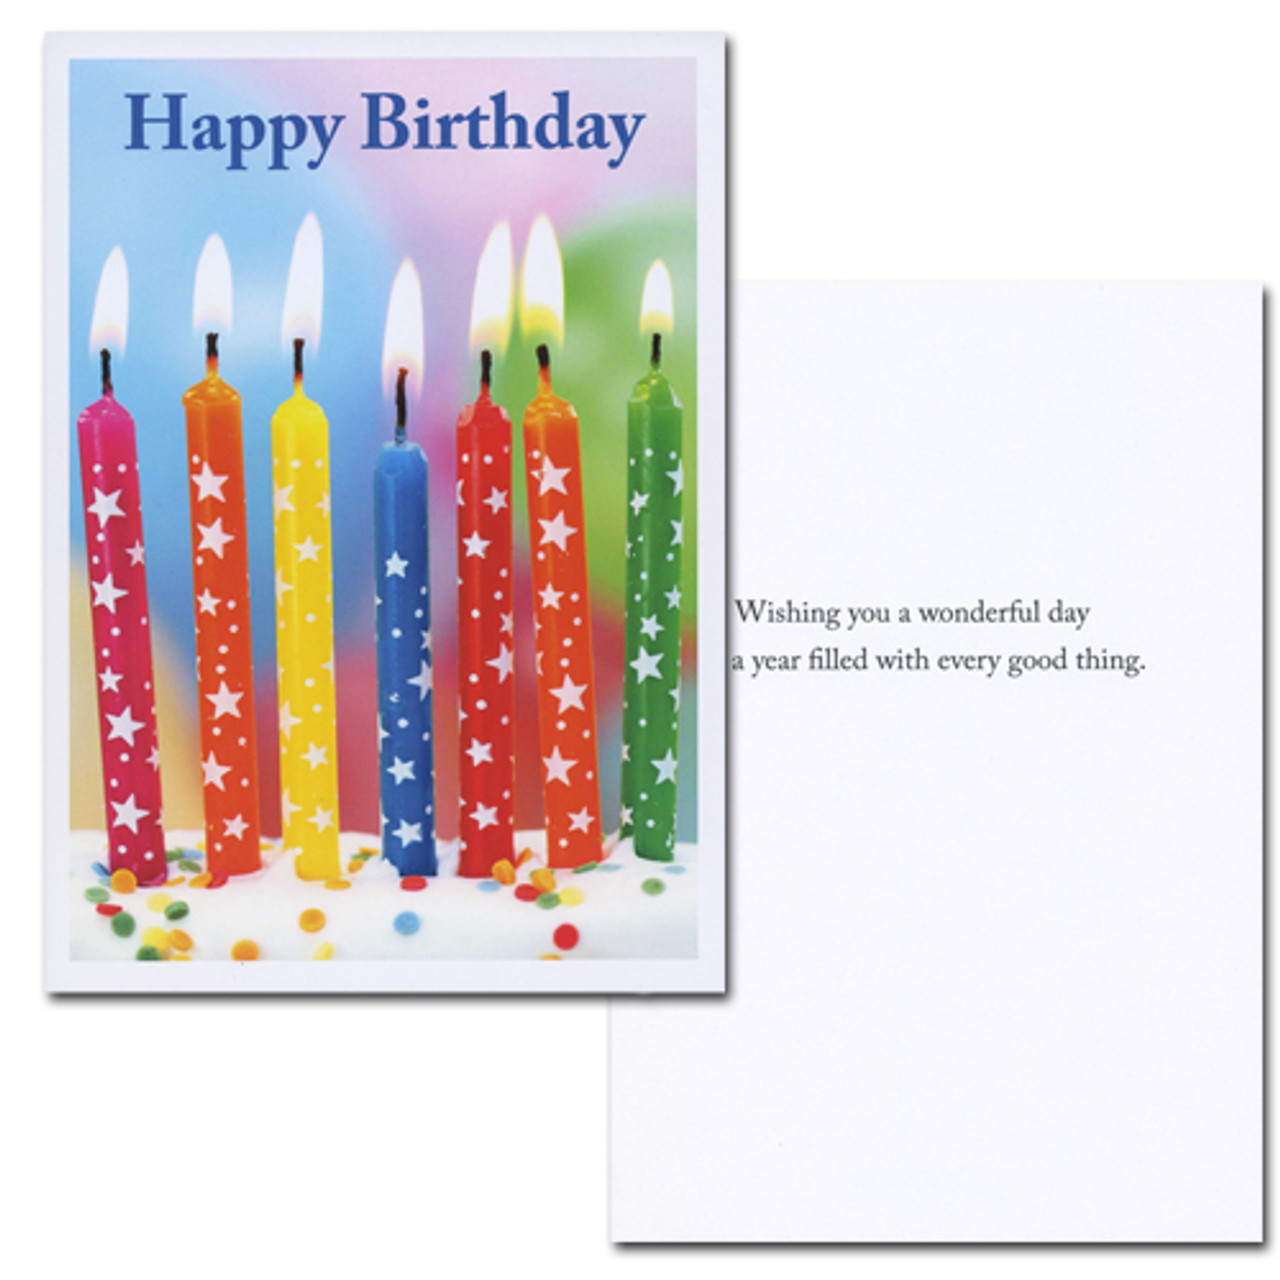 """inside of business birthday card - star spangled candles contains the words """"wishing you a wonderful day and a year filled with every good thing"""""""